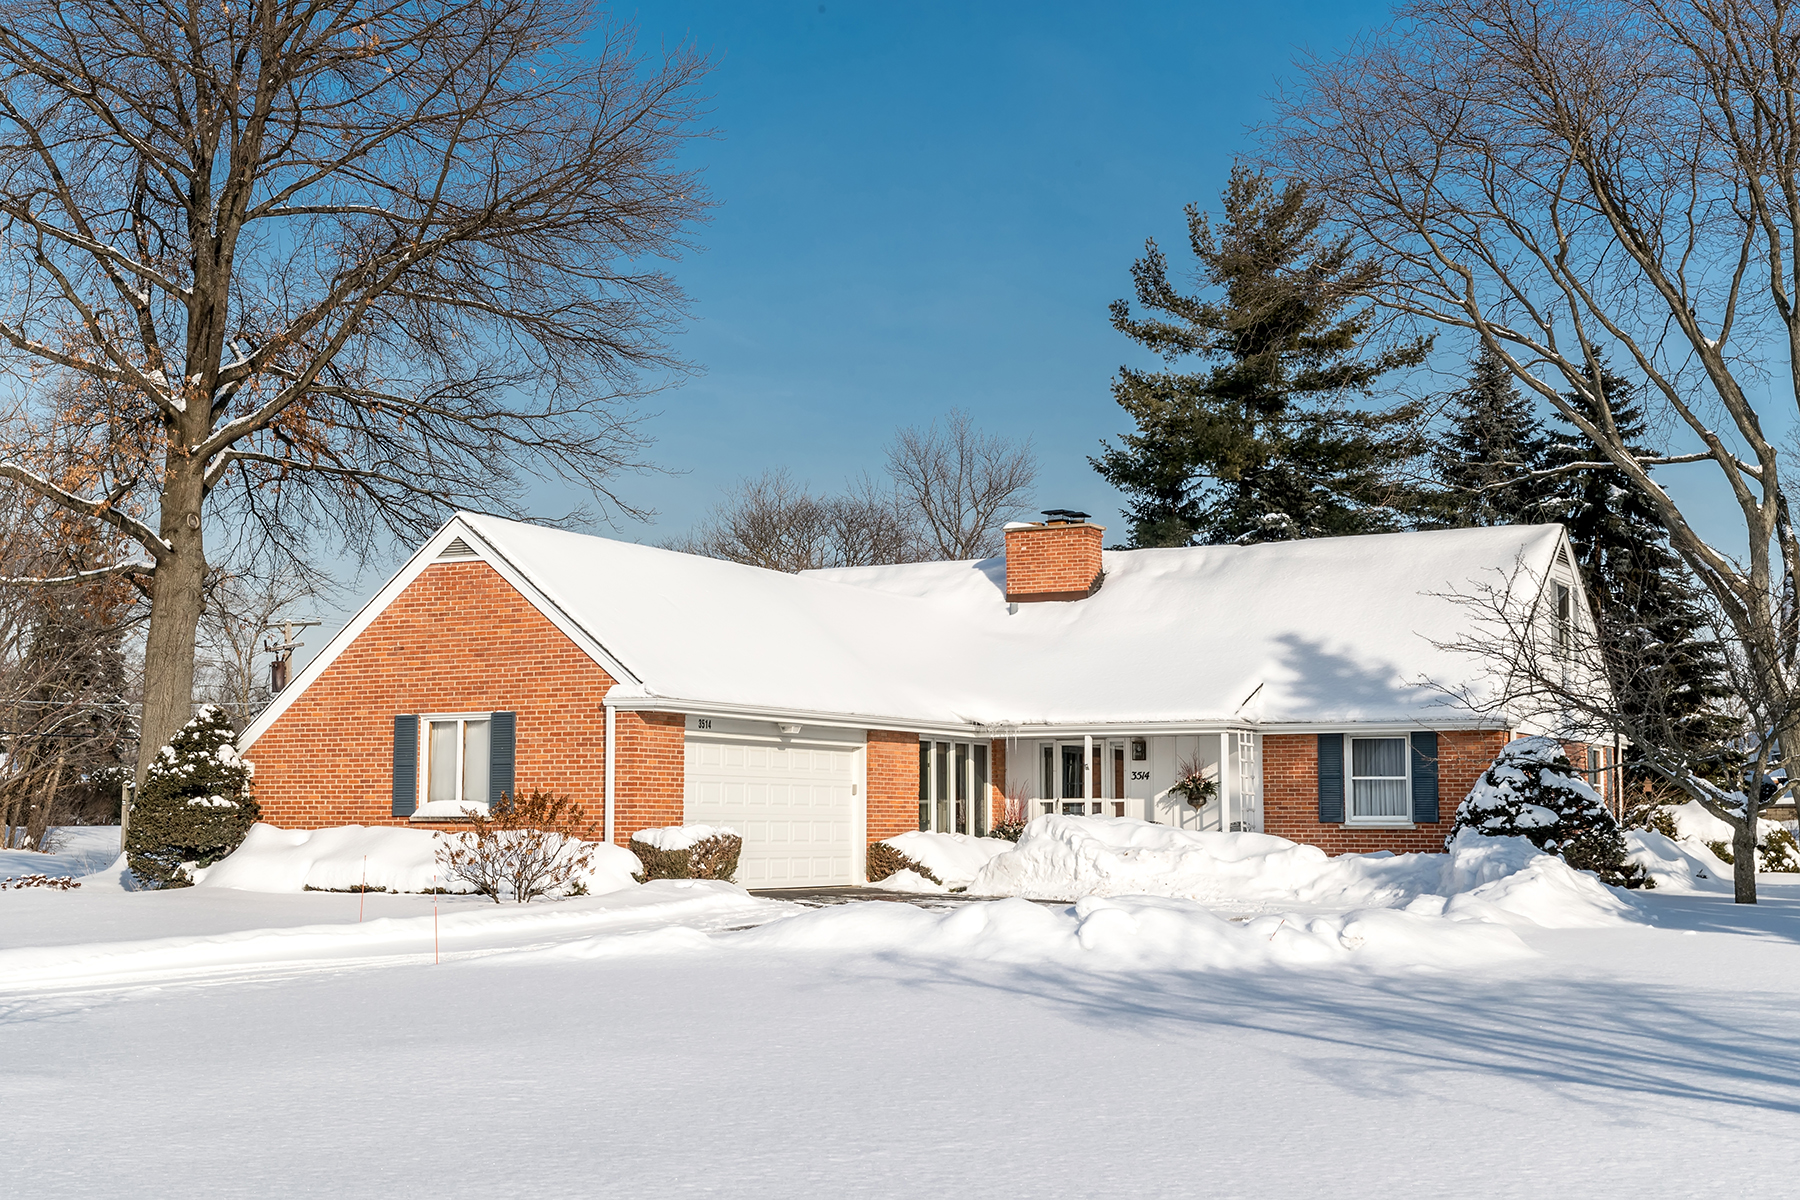 Single Family Home for Sale at 3514 Whirlaway, Northbrook 3514 Whirlaway Drive Northbrook, Illinois 60062 United States